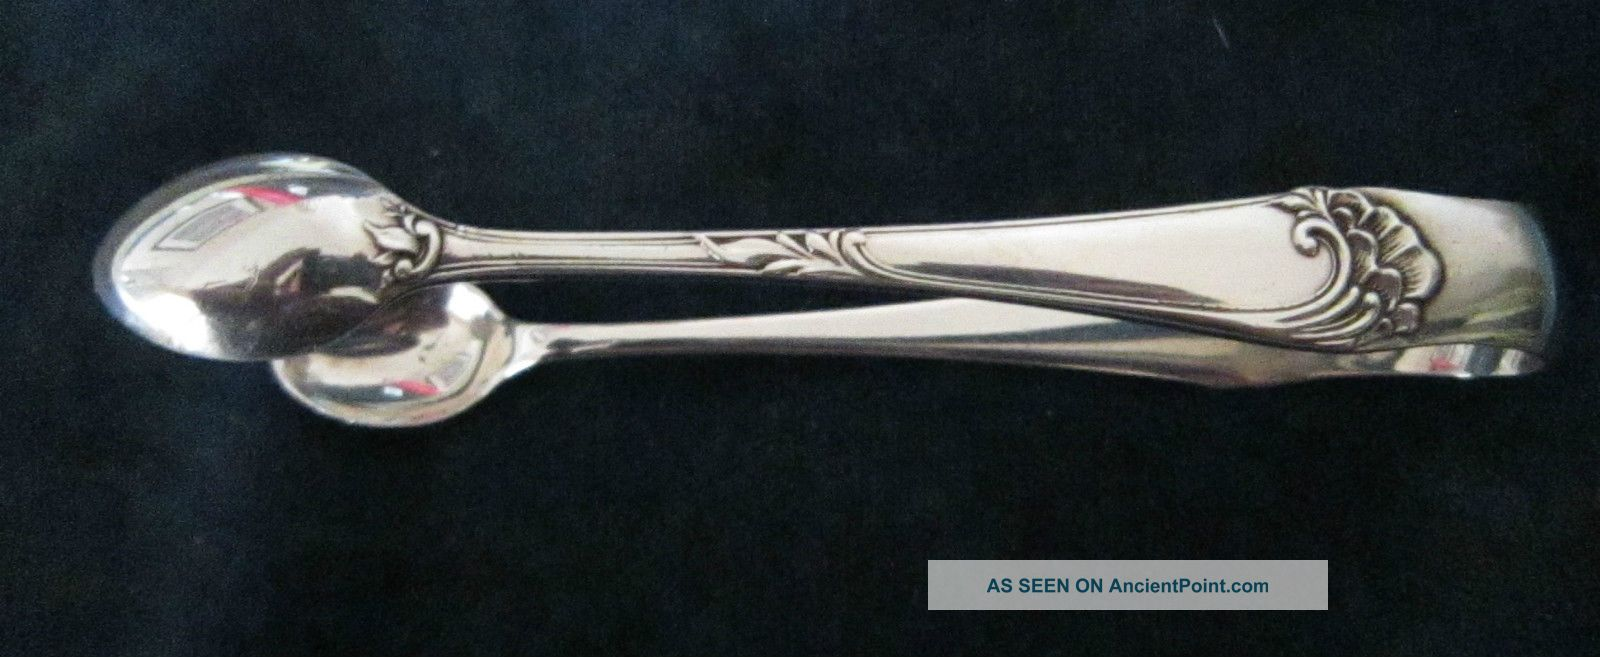 Antique Solid Silver Sugar Tongs - Birmingham 1896 Sugar Bowls & Tongs photo